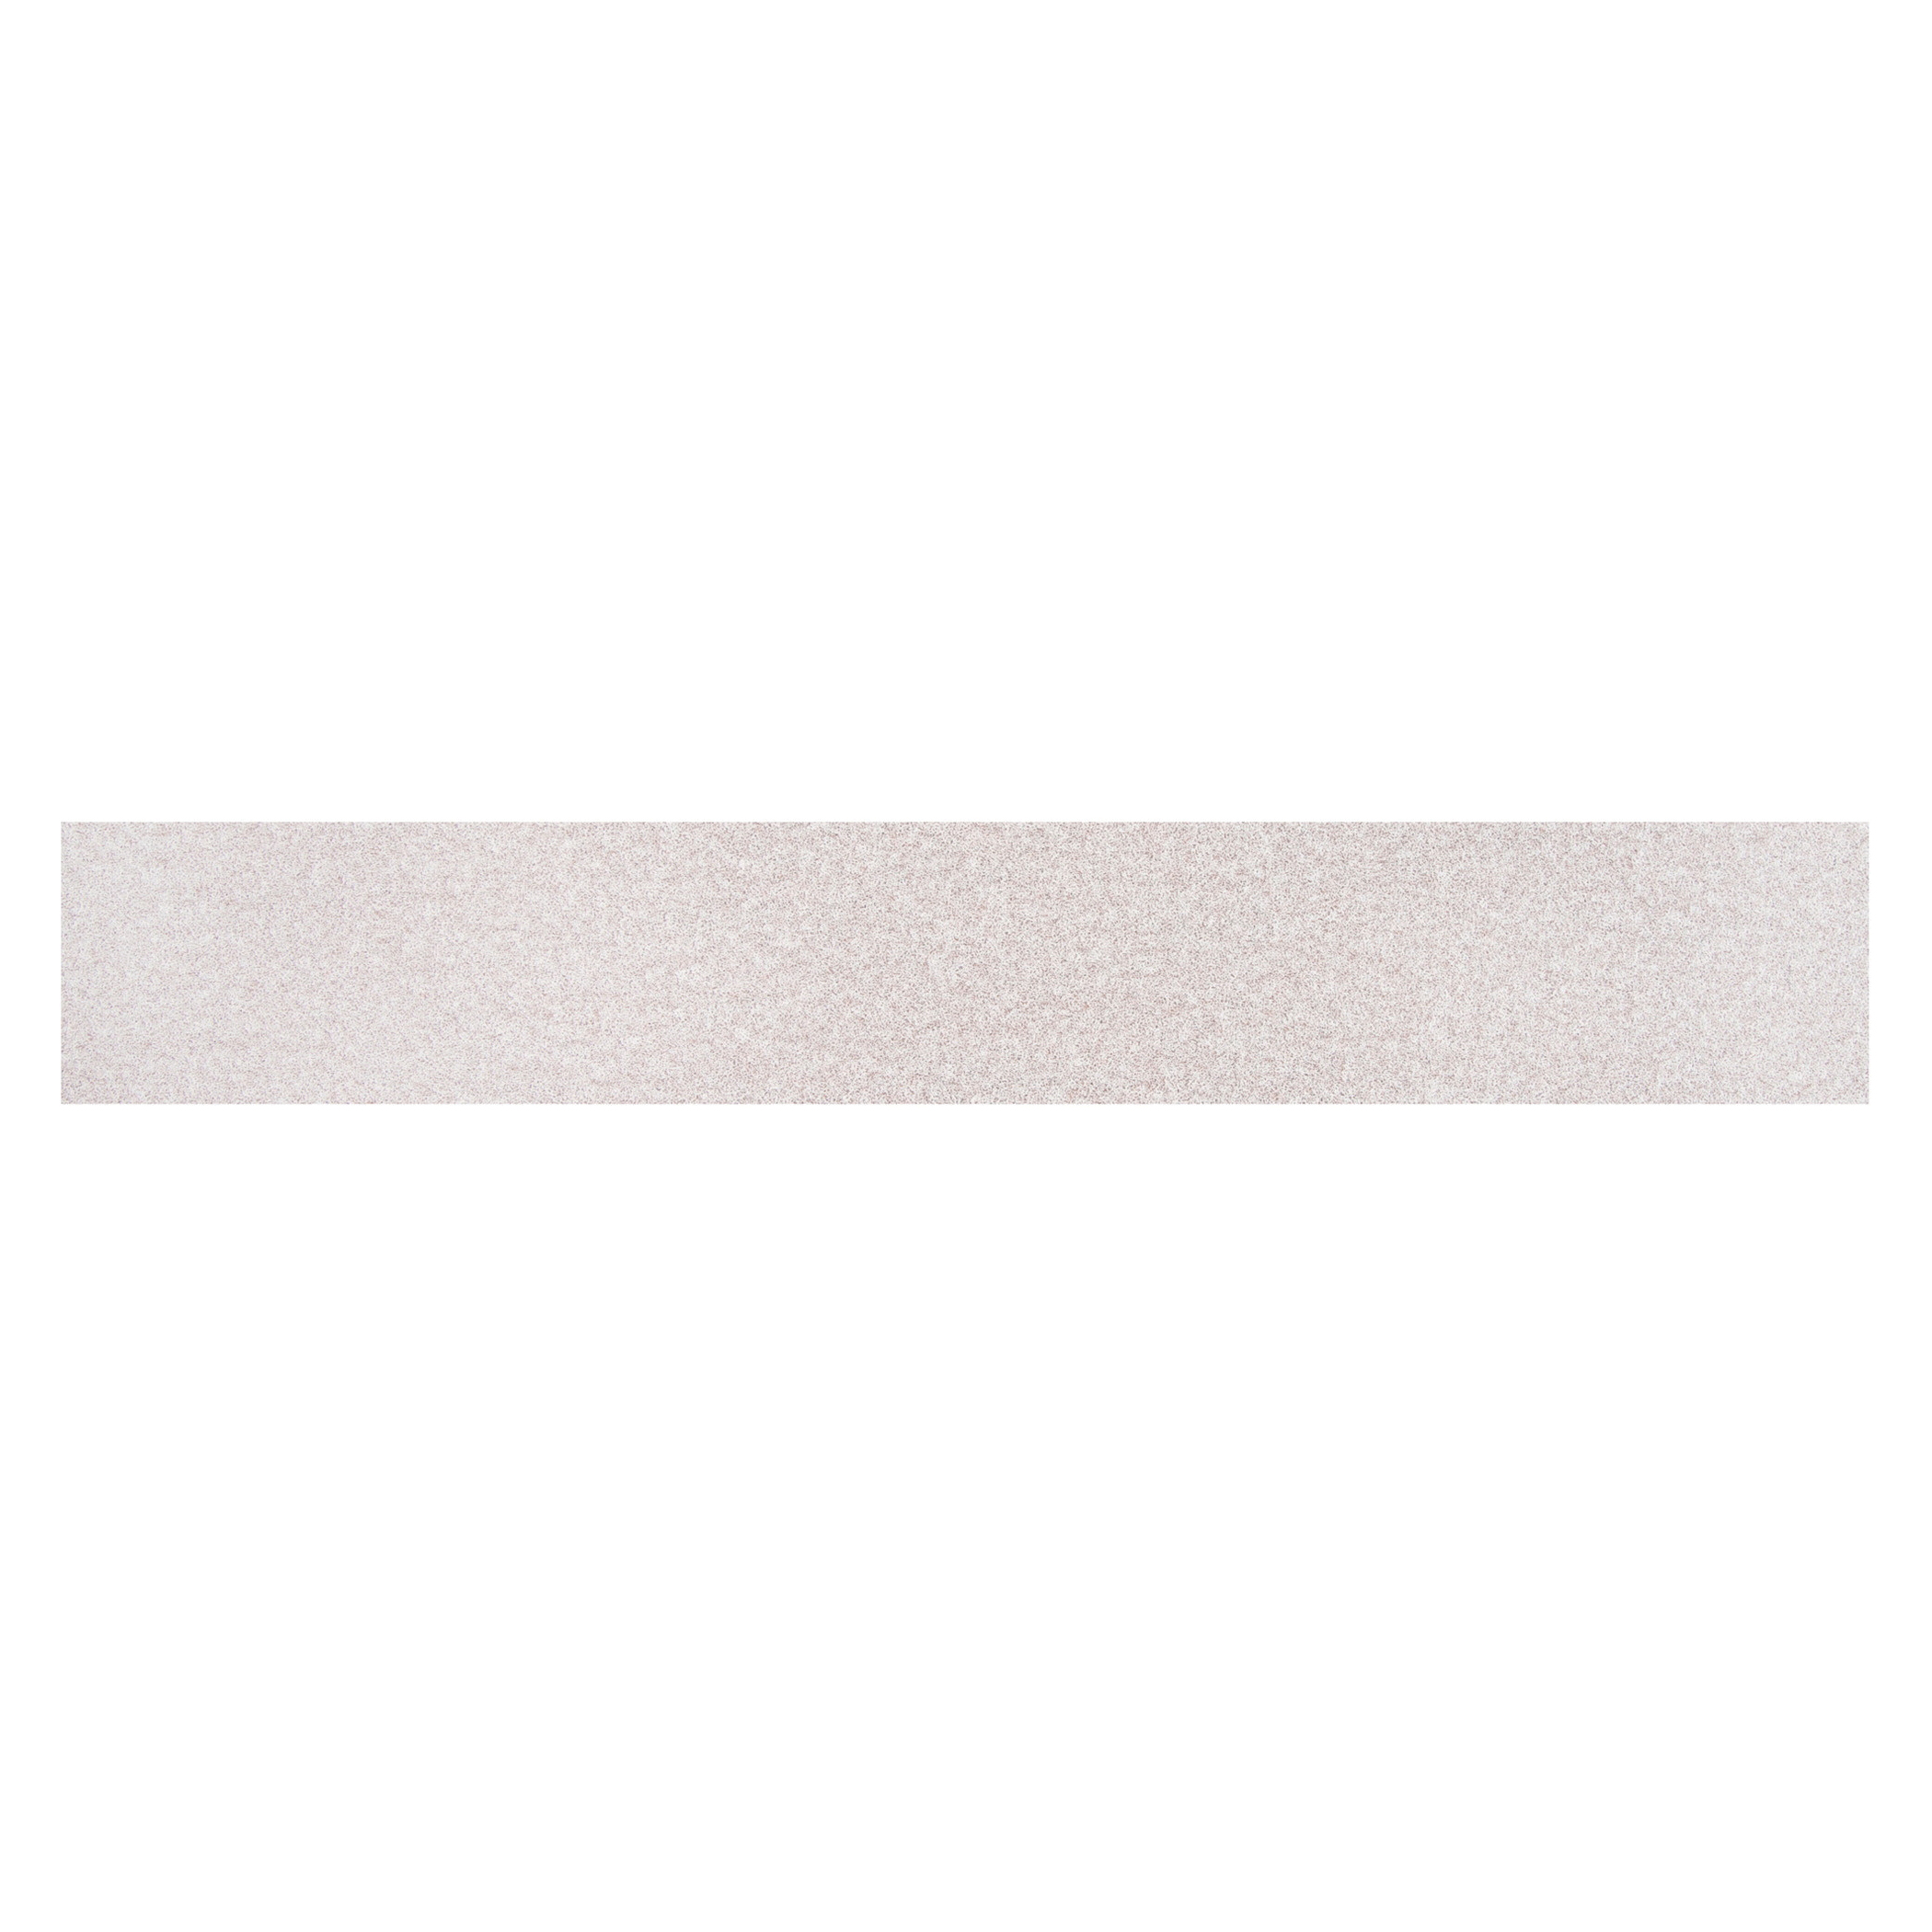 Norton® 66261131642 A275OP Hook and Loop Coated File Strip, 16-1/2 in L x 2-3/4 in W, P180 Grit, Fine Grade, Aluminum Oxide Abrasive, Anti-Loading Paper Backing